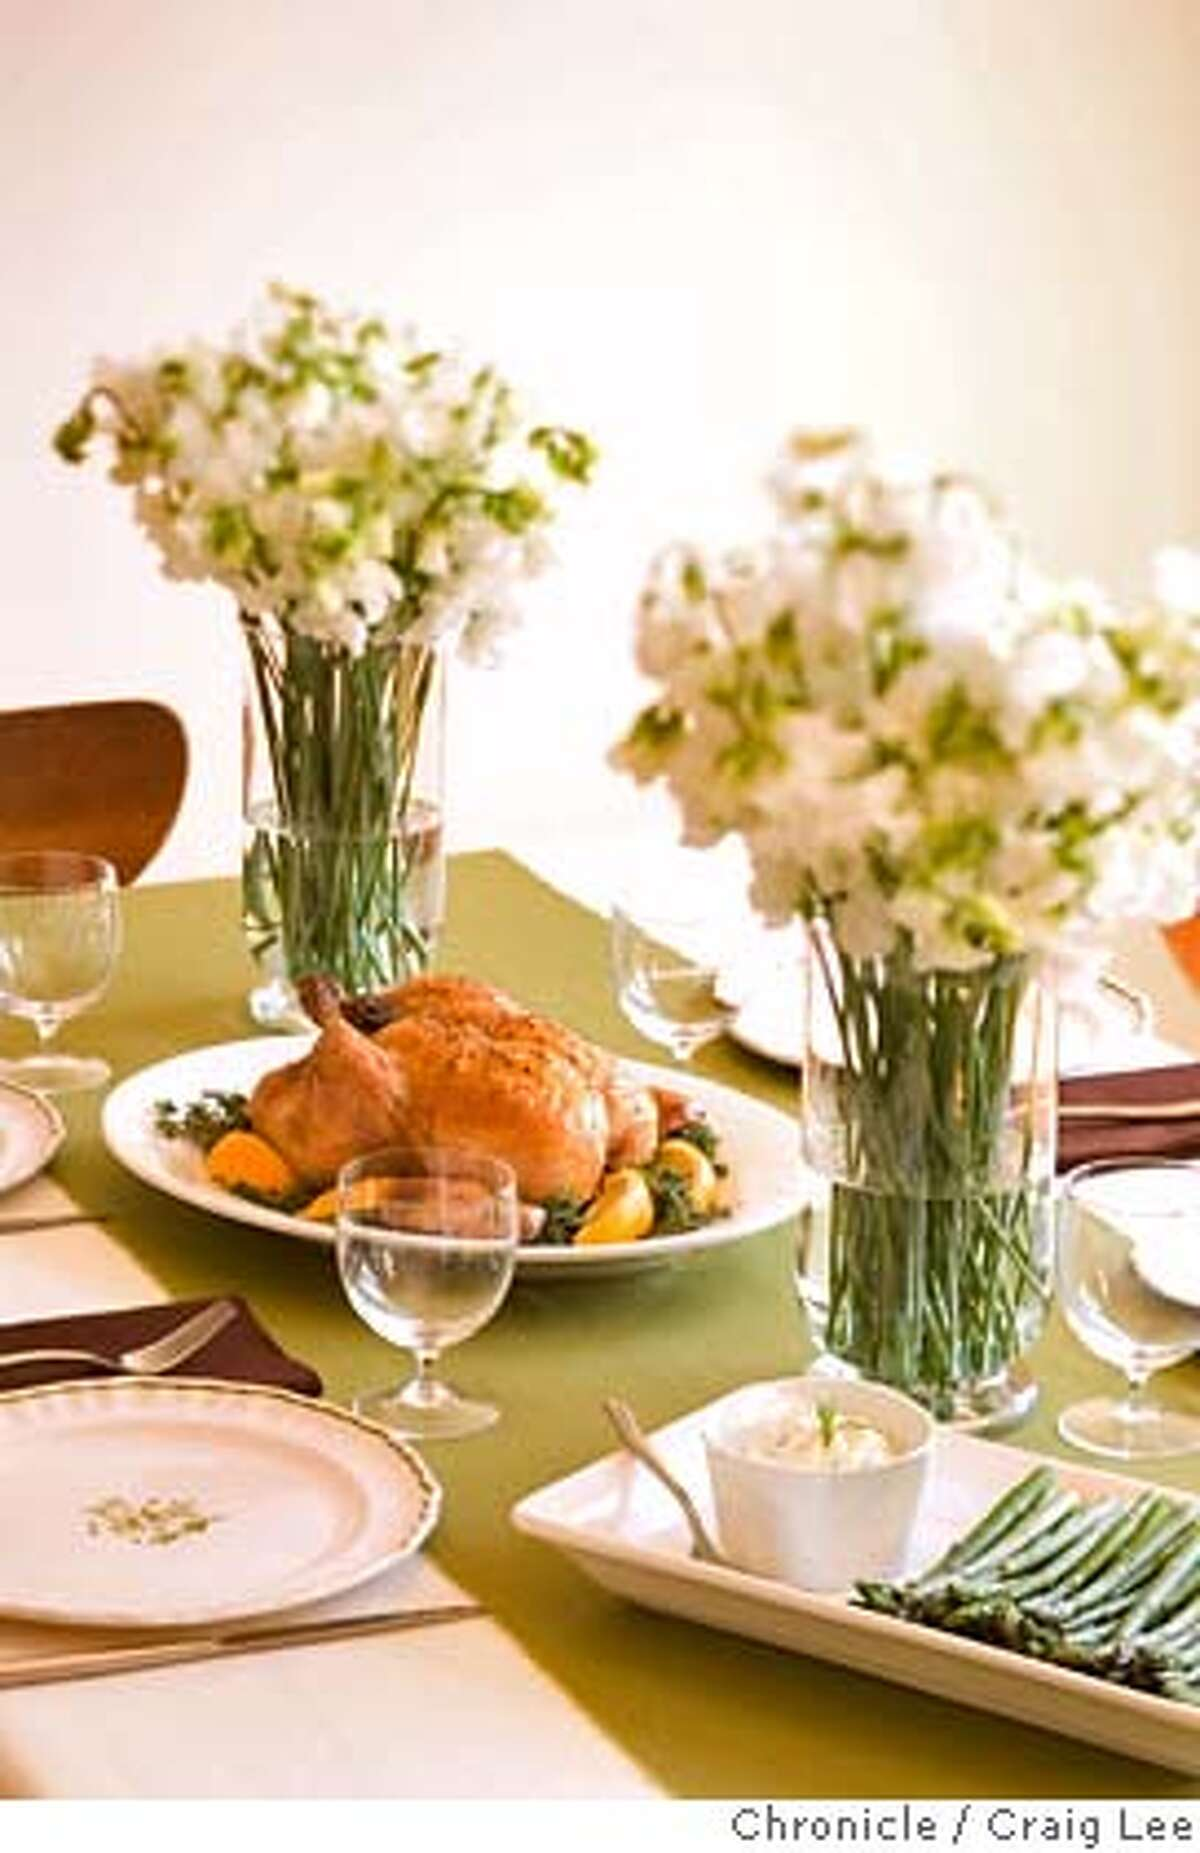 ###Live Caption:Roast chicken and asparagus for a spring entertaining food spread. Food styled by Ethel Brennan. Photo by Craig Lee / The San Francisco Chronicle###Caption History:Roast chicken and asparagus for a spring entertaining food spread. Food styled by Ethel Brennan. Photo by Craig Lee / The San Francisco Chronicle###Notes:Craig Lee 415-218-8597 clee@sfchronicle.com###Special Instructions:MANDATORY CREDIT FOR PHOTOG AND SF CHRONICLE/NO SALES-MAGS OUT